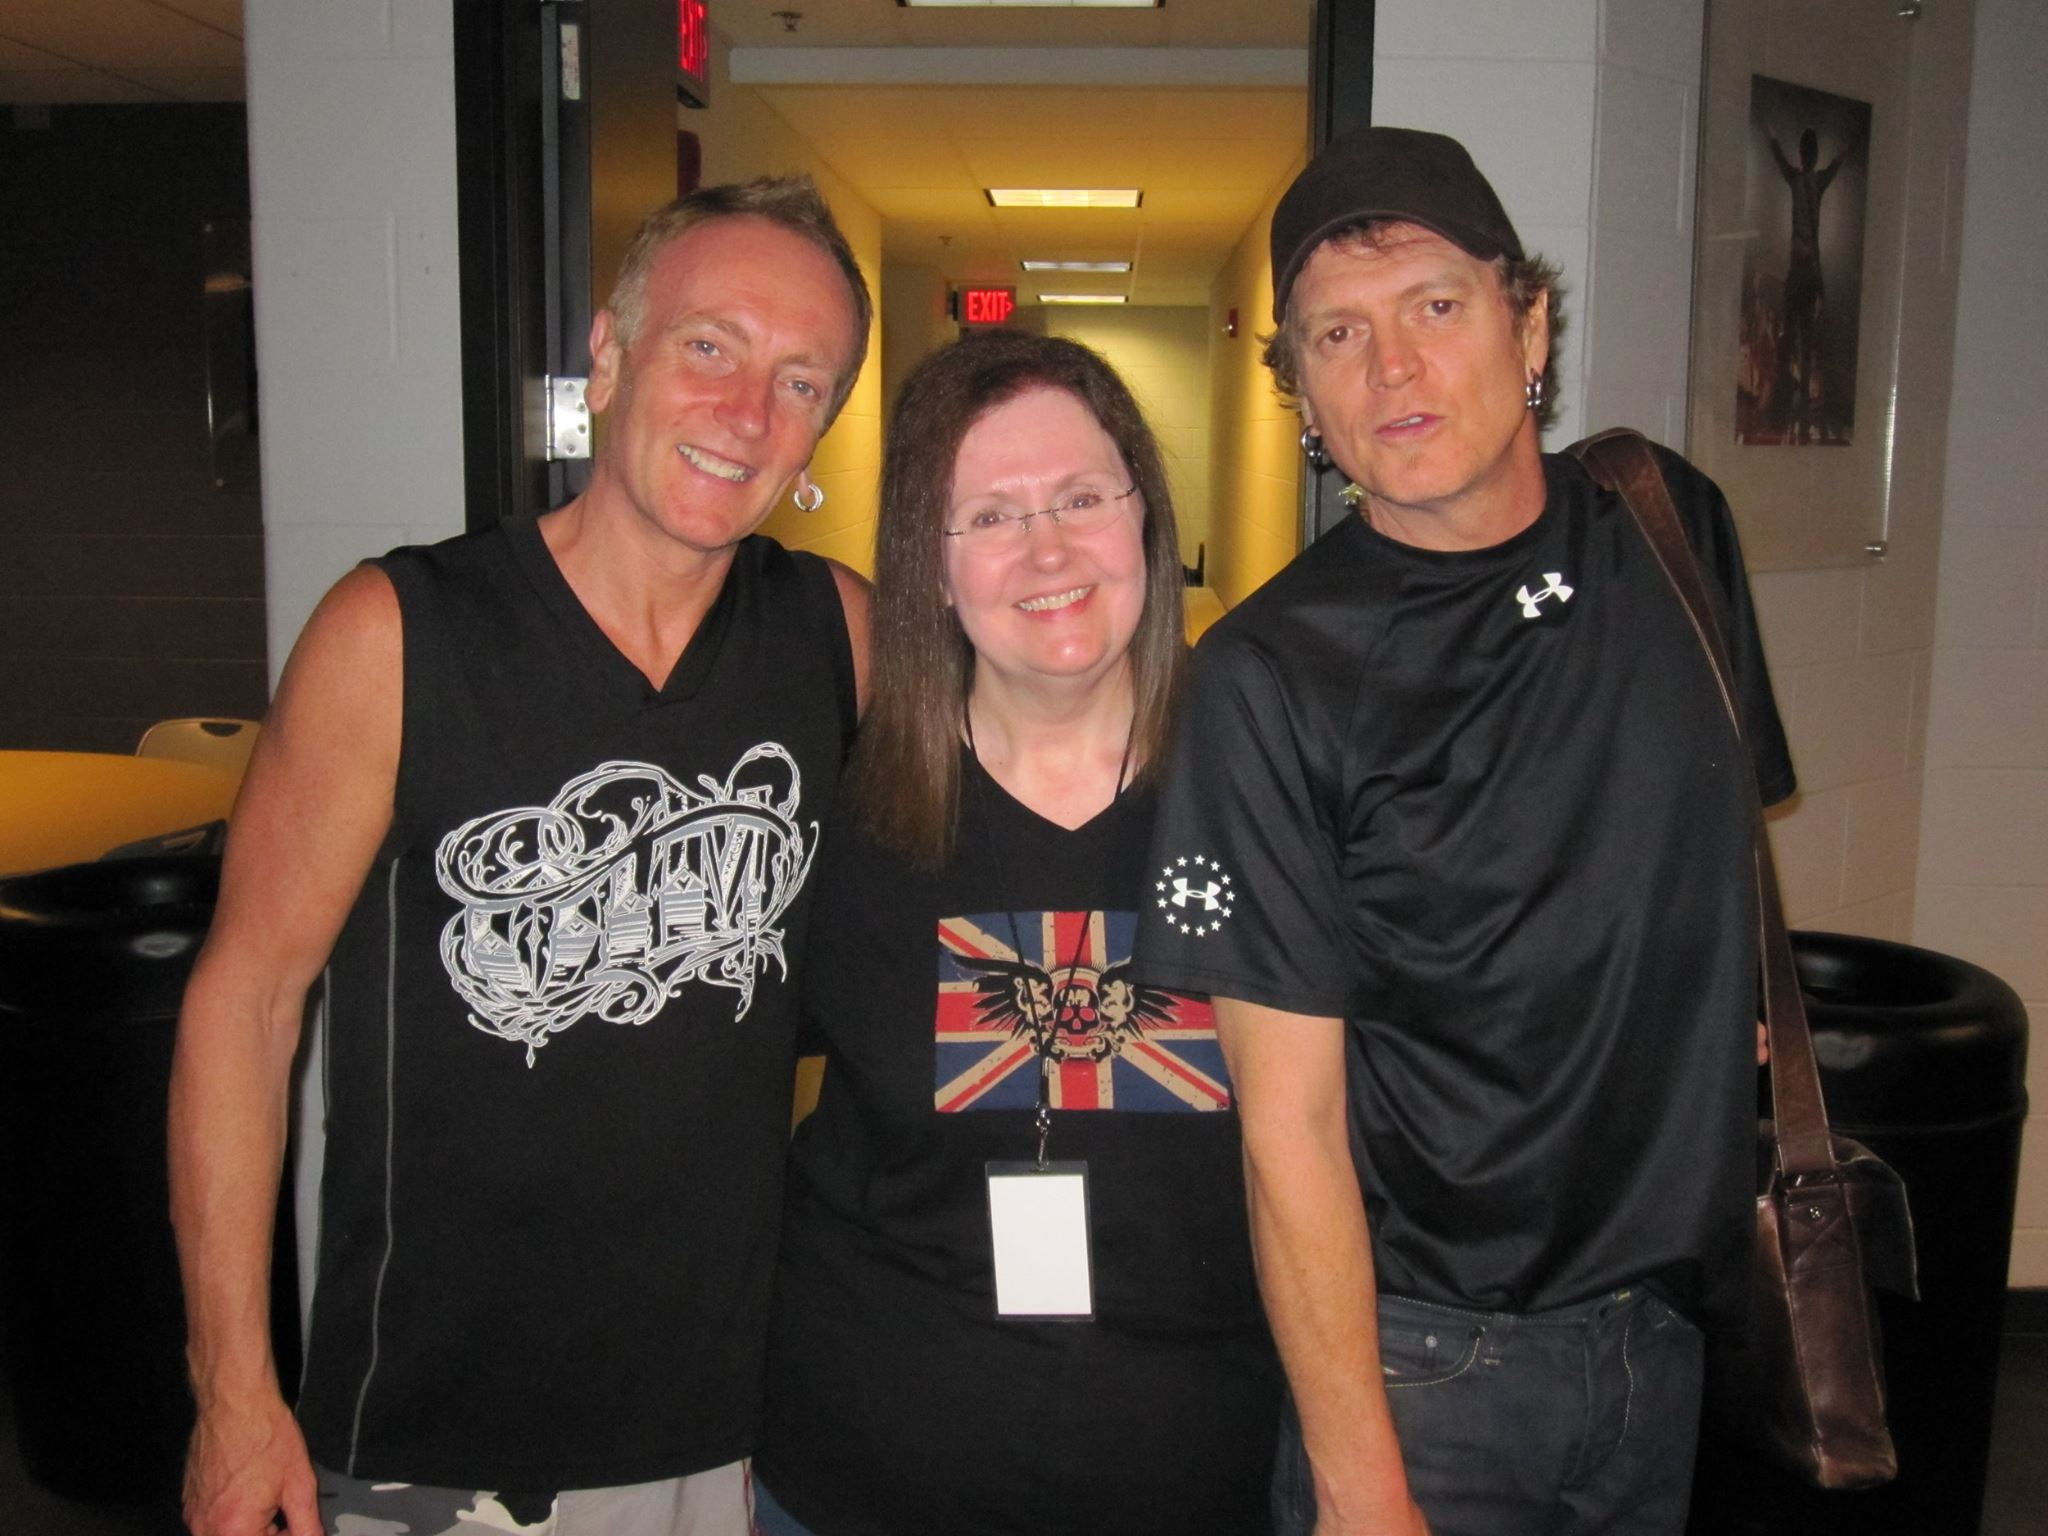 Backstage at AT&T Center in San Antonio Texas - September 24th 2011